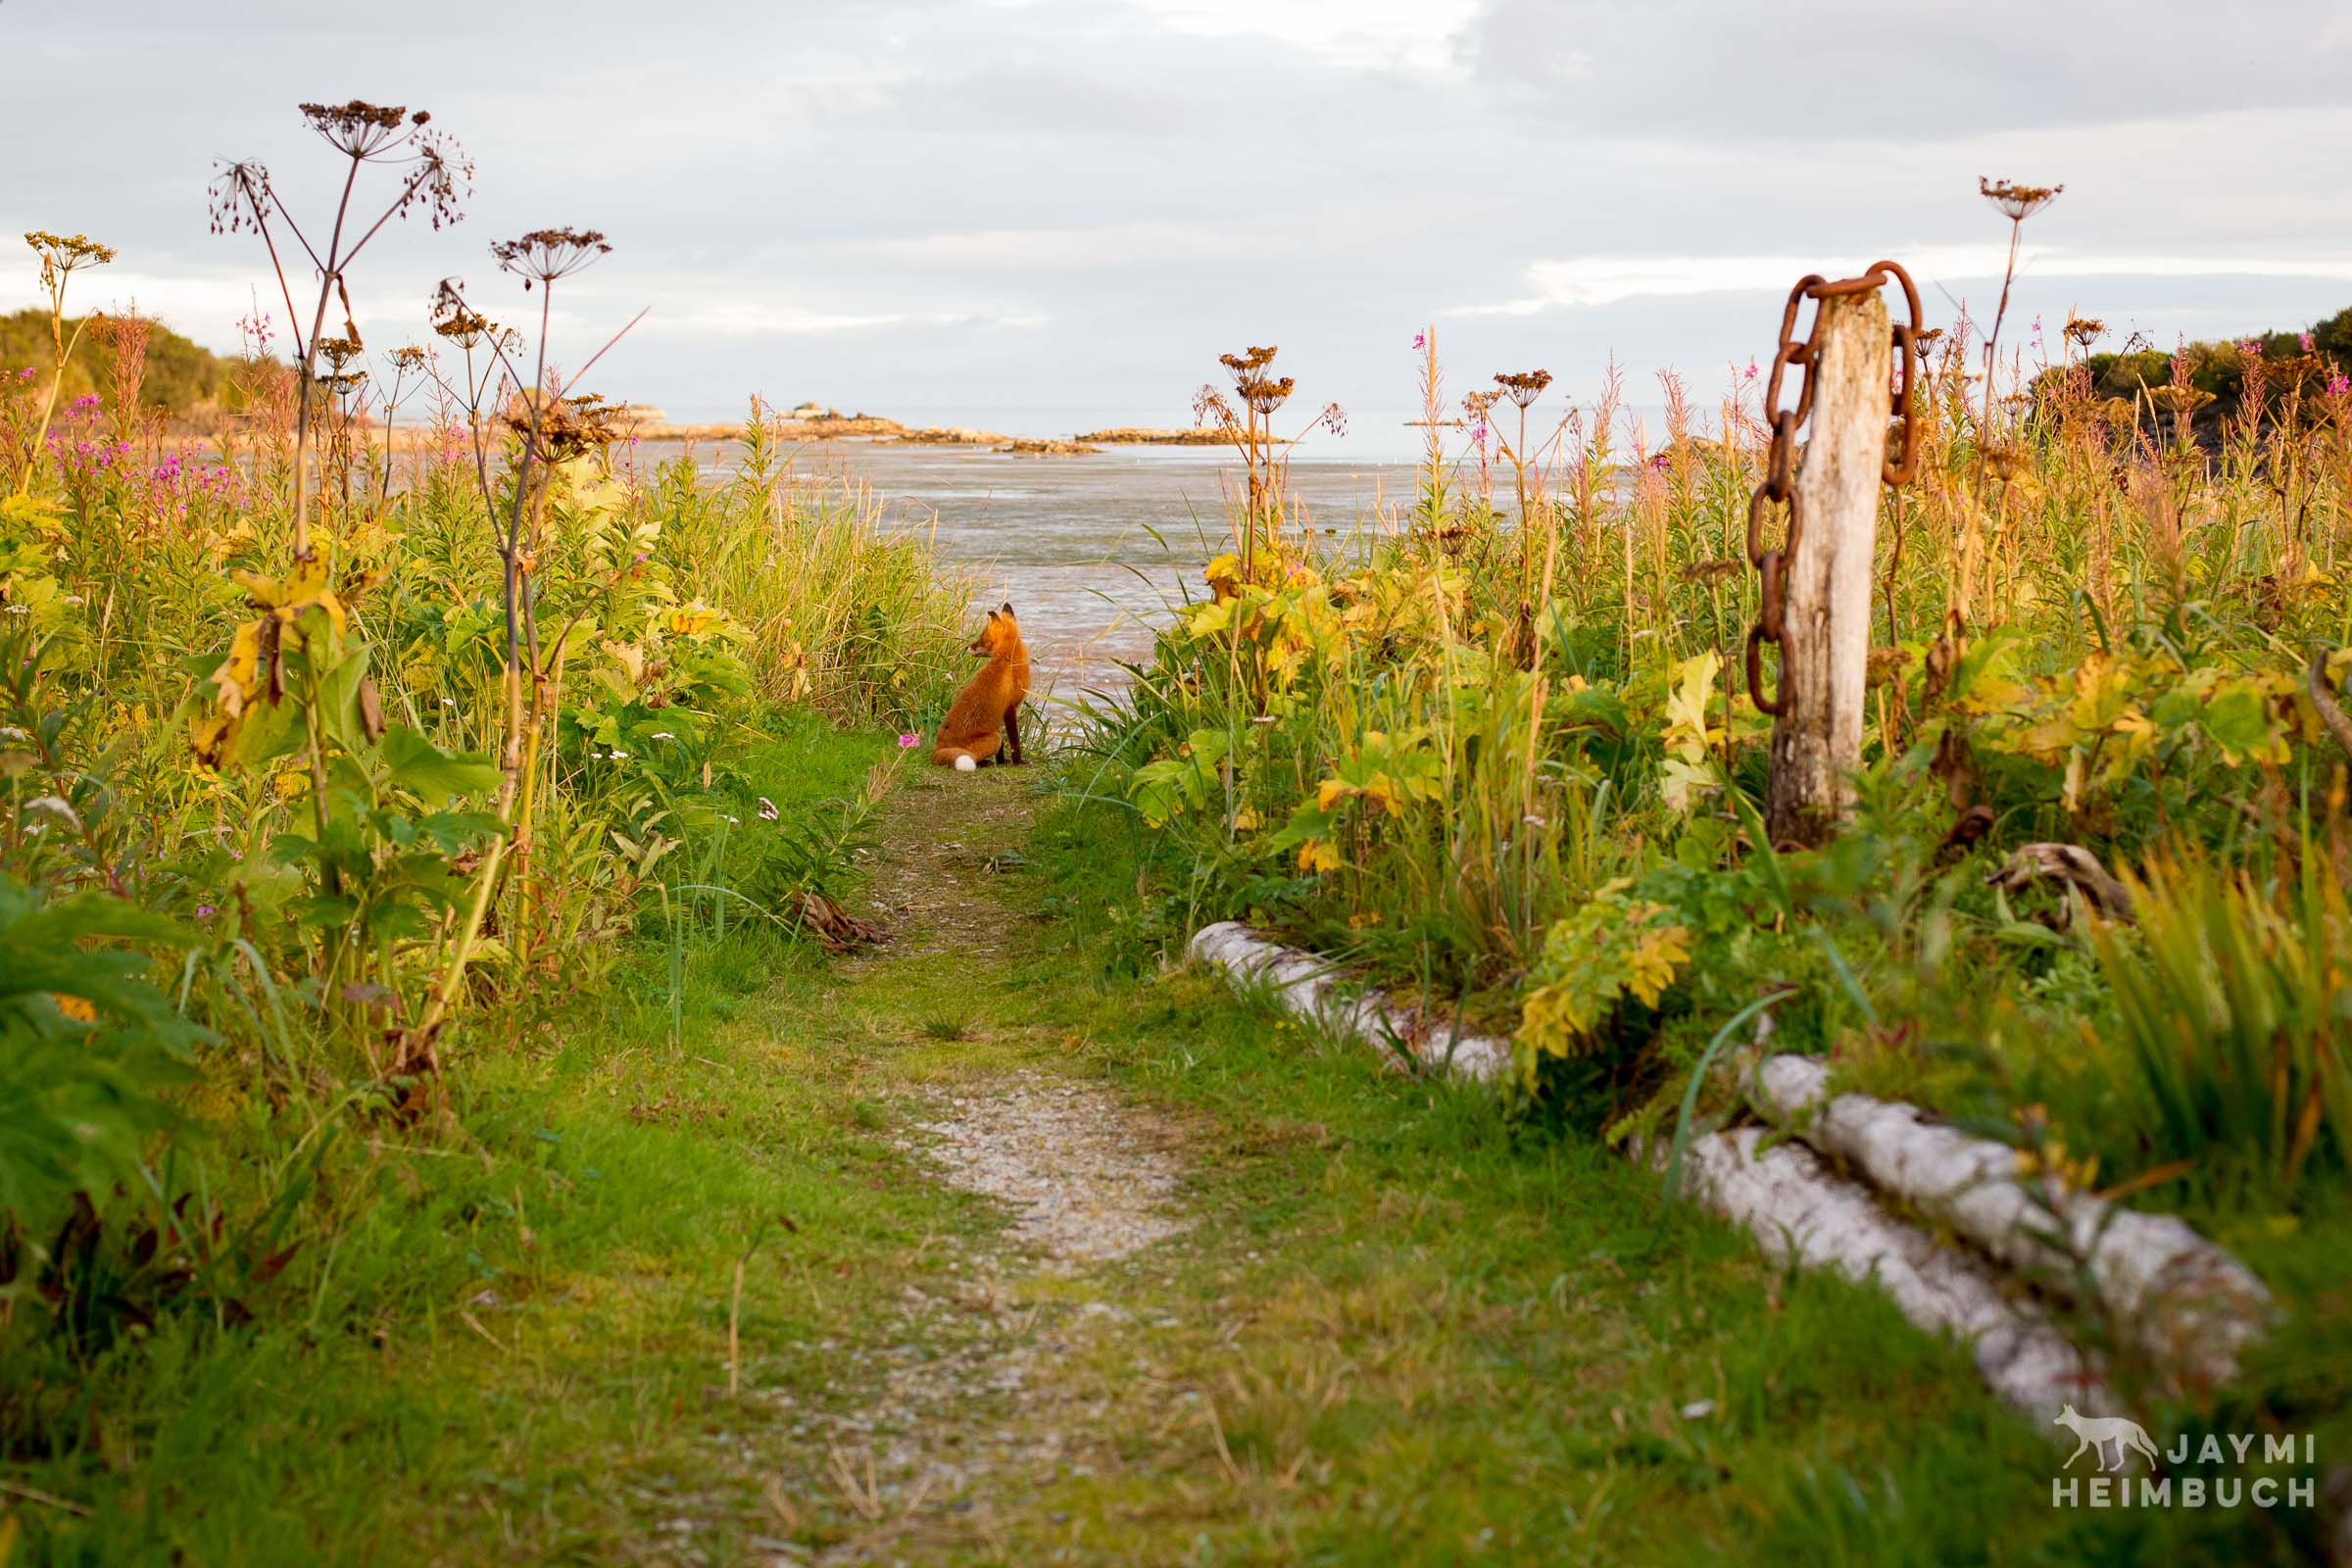 A red fox sits on a garden path and enjoys the view of the bay at sunset.